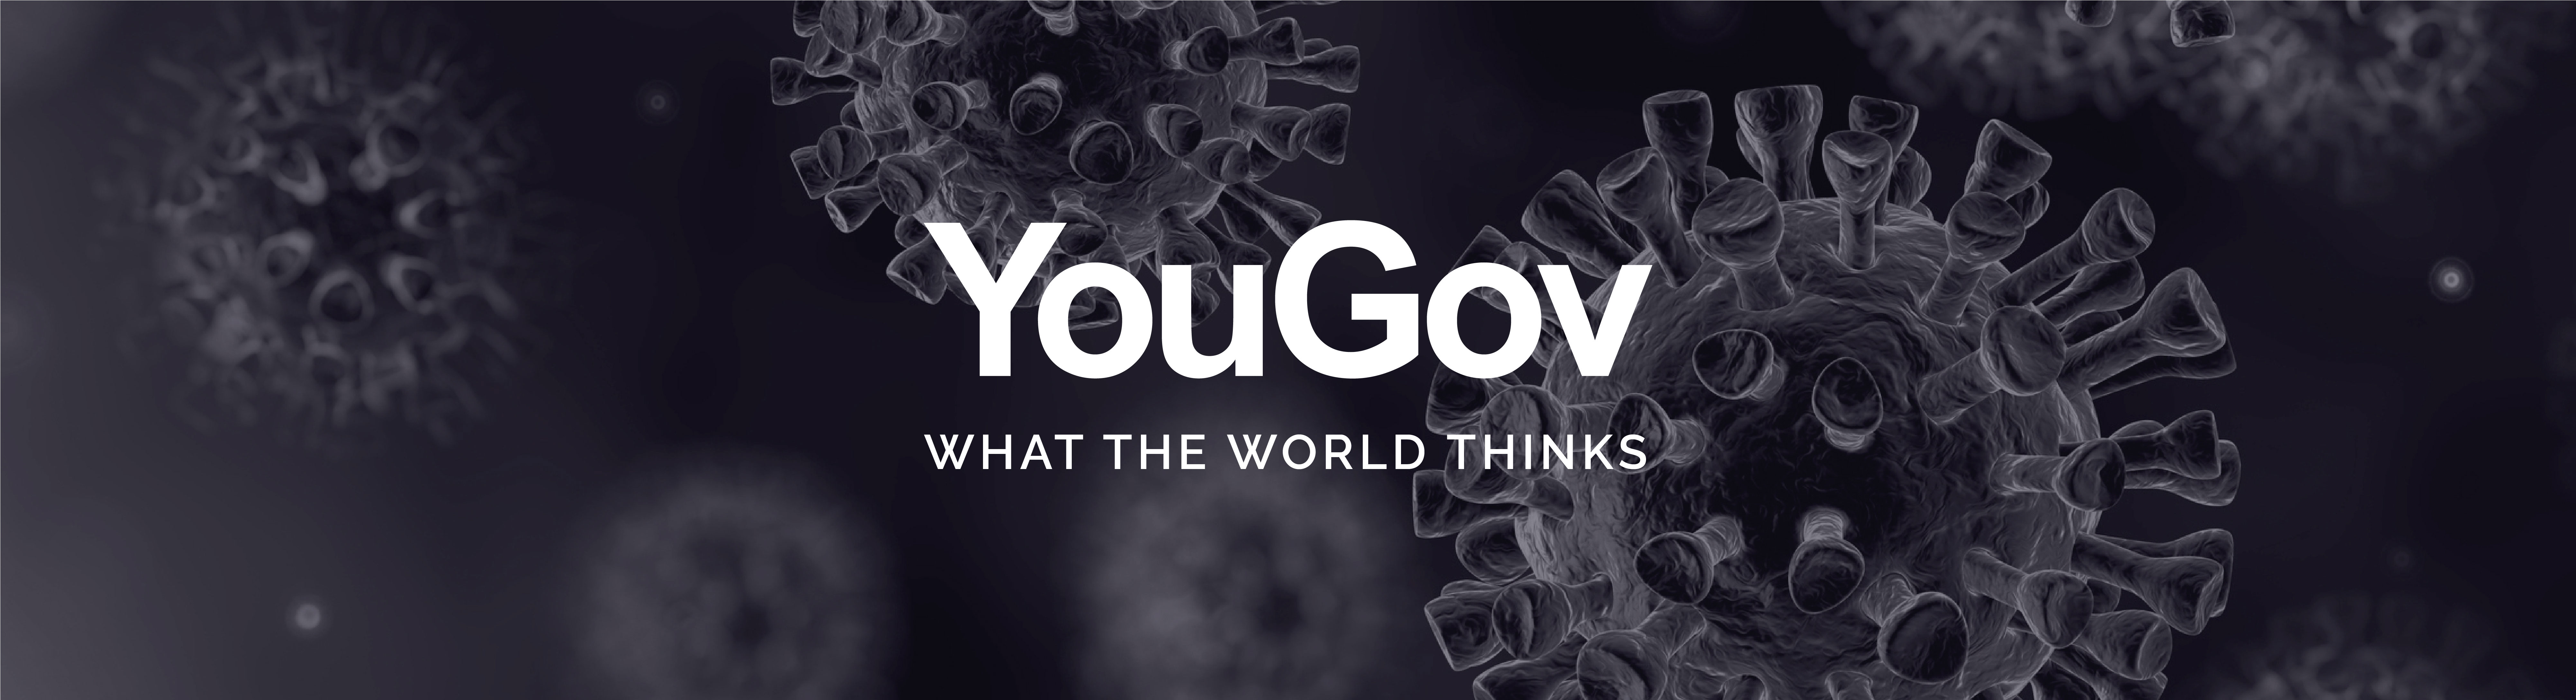 YOUGOV_COVID19-Banner